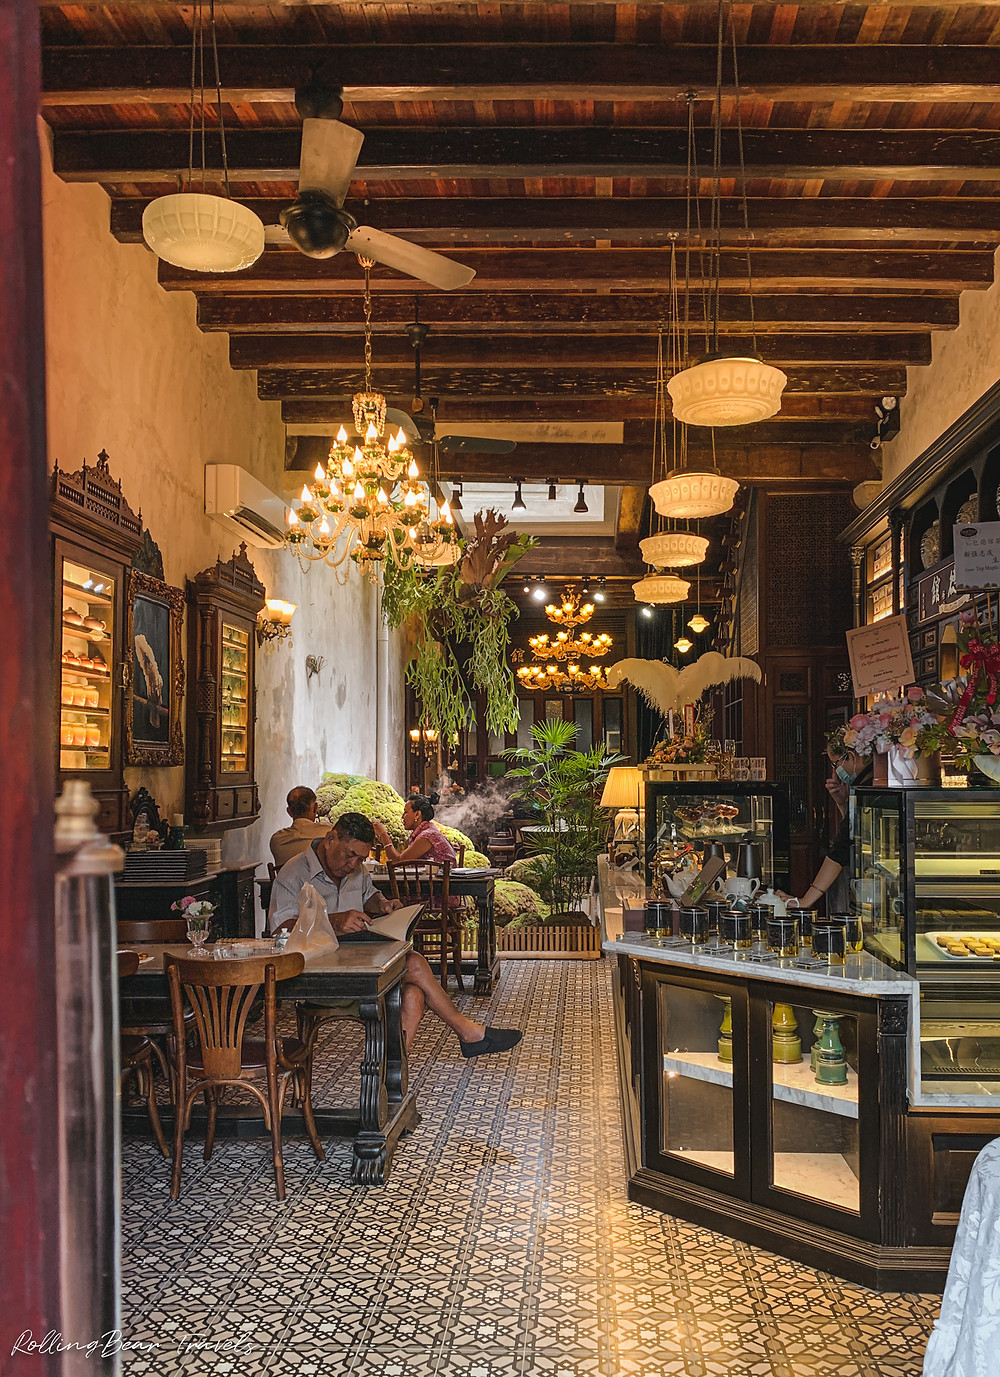 Bao Teck Teahouse Review: Traditional Peranakan style dining room interiors and heritage furniture | RollingBear Travels.